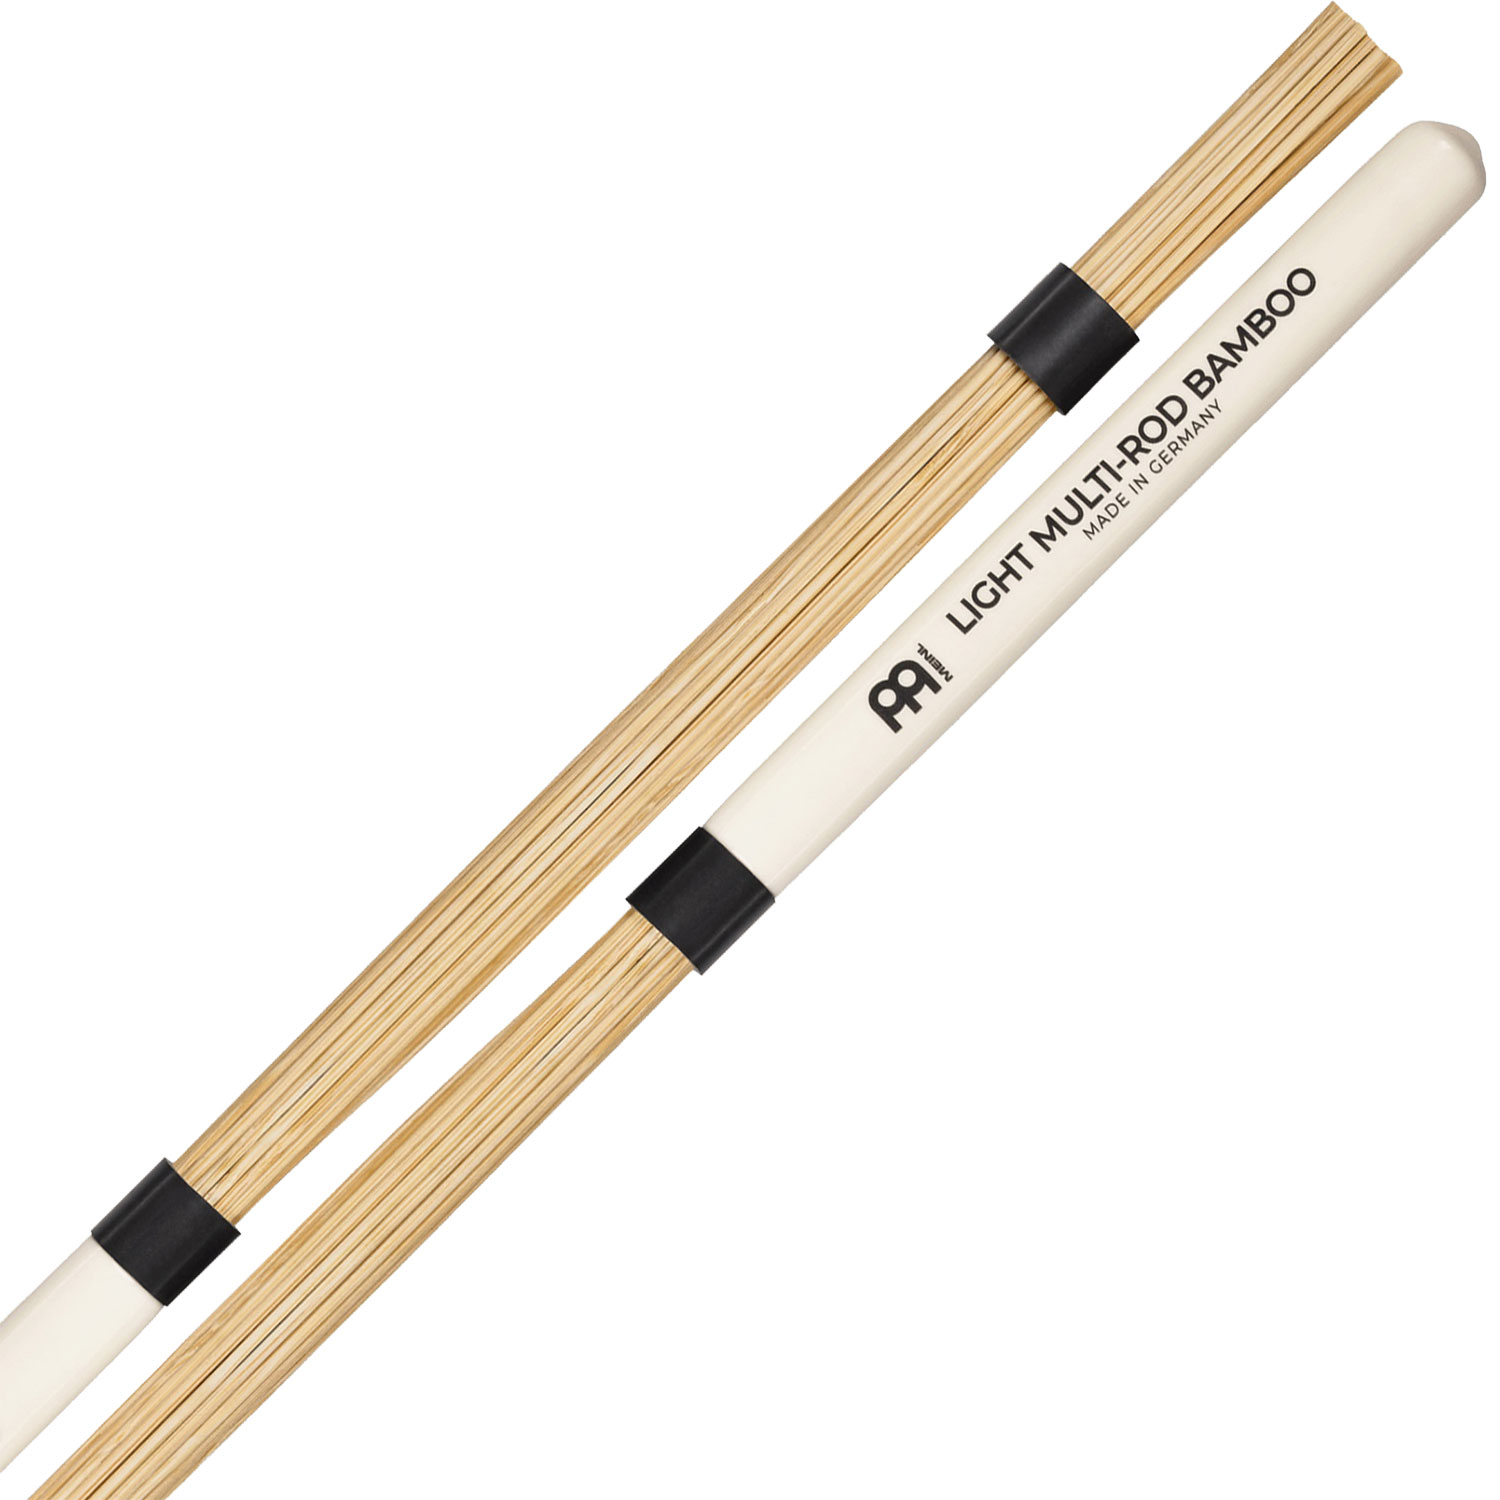 Meinl Light Bamboo Multi-Rod Bundle Sticks